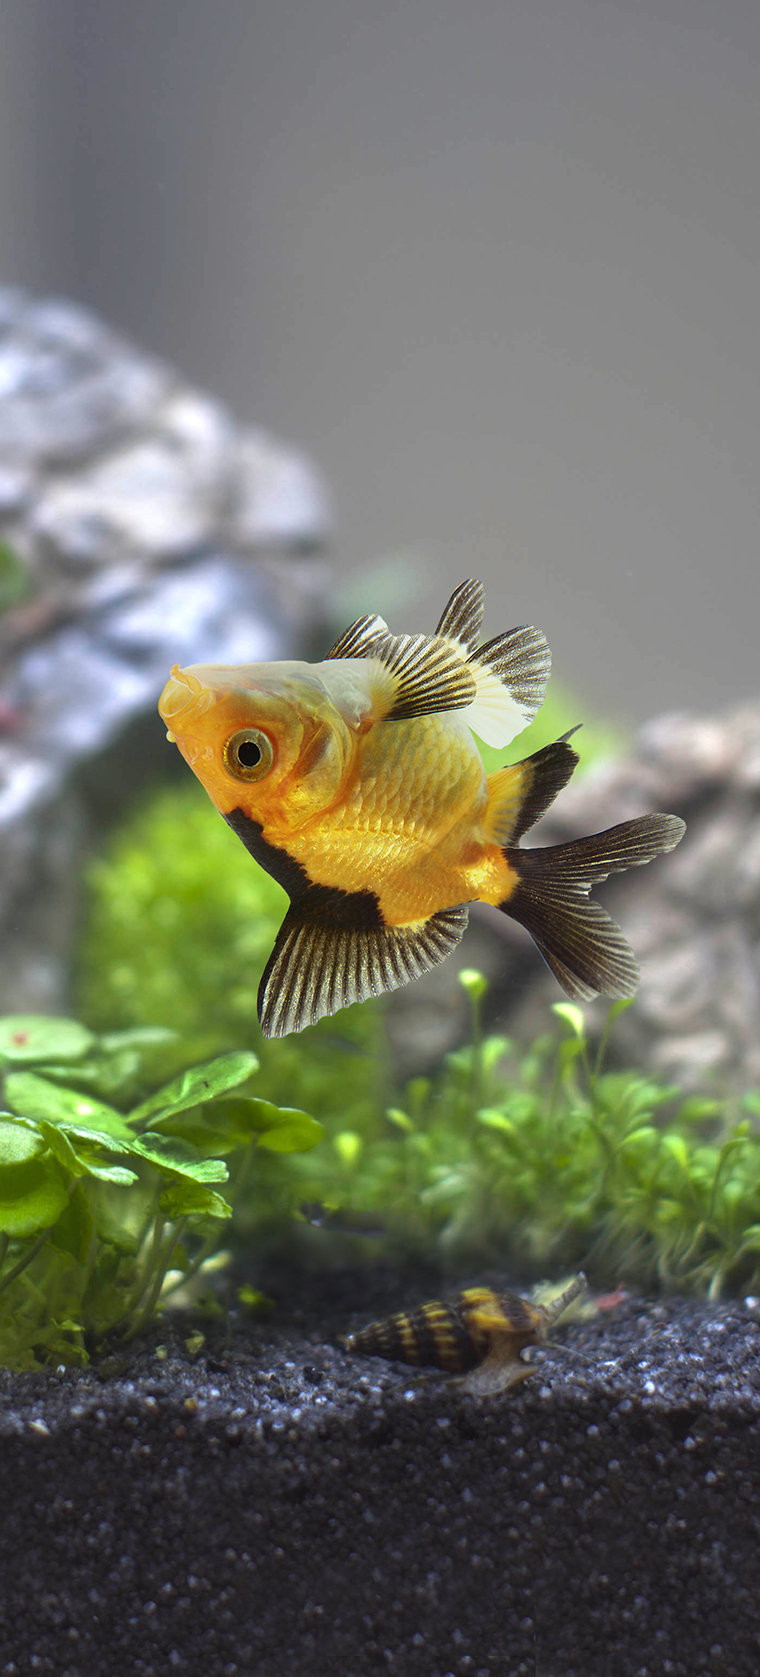 An orange and black aquarium fish laying upside down in the middle of an aquarium